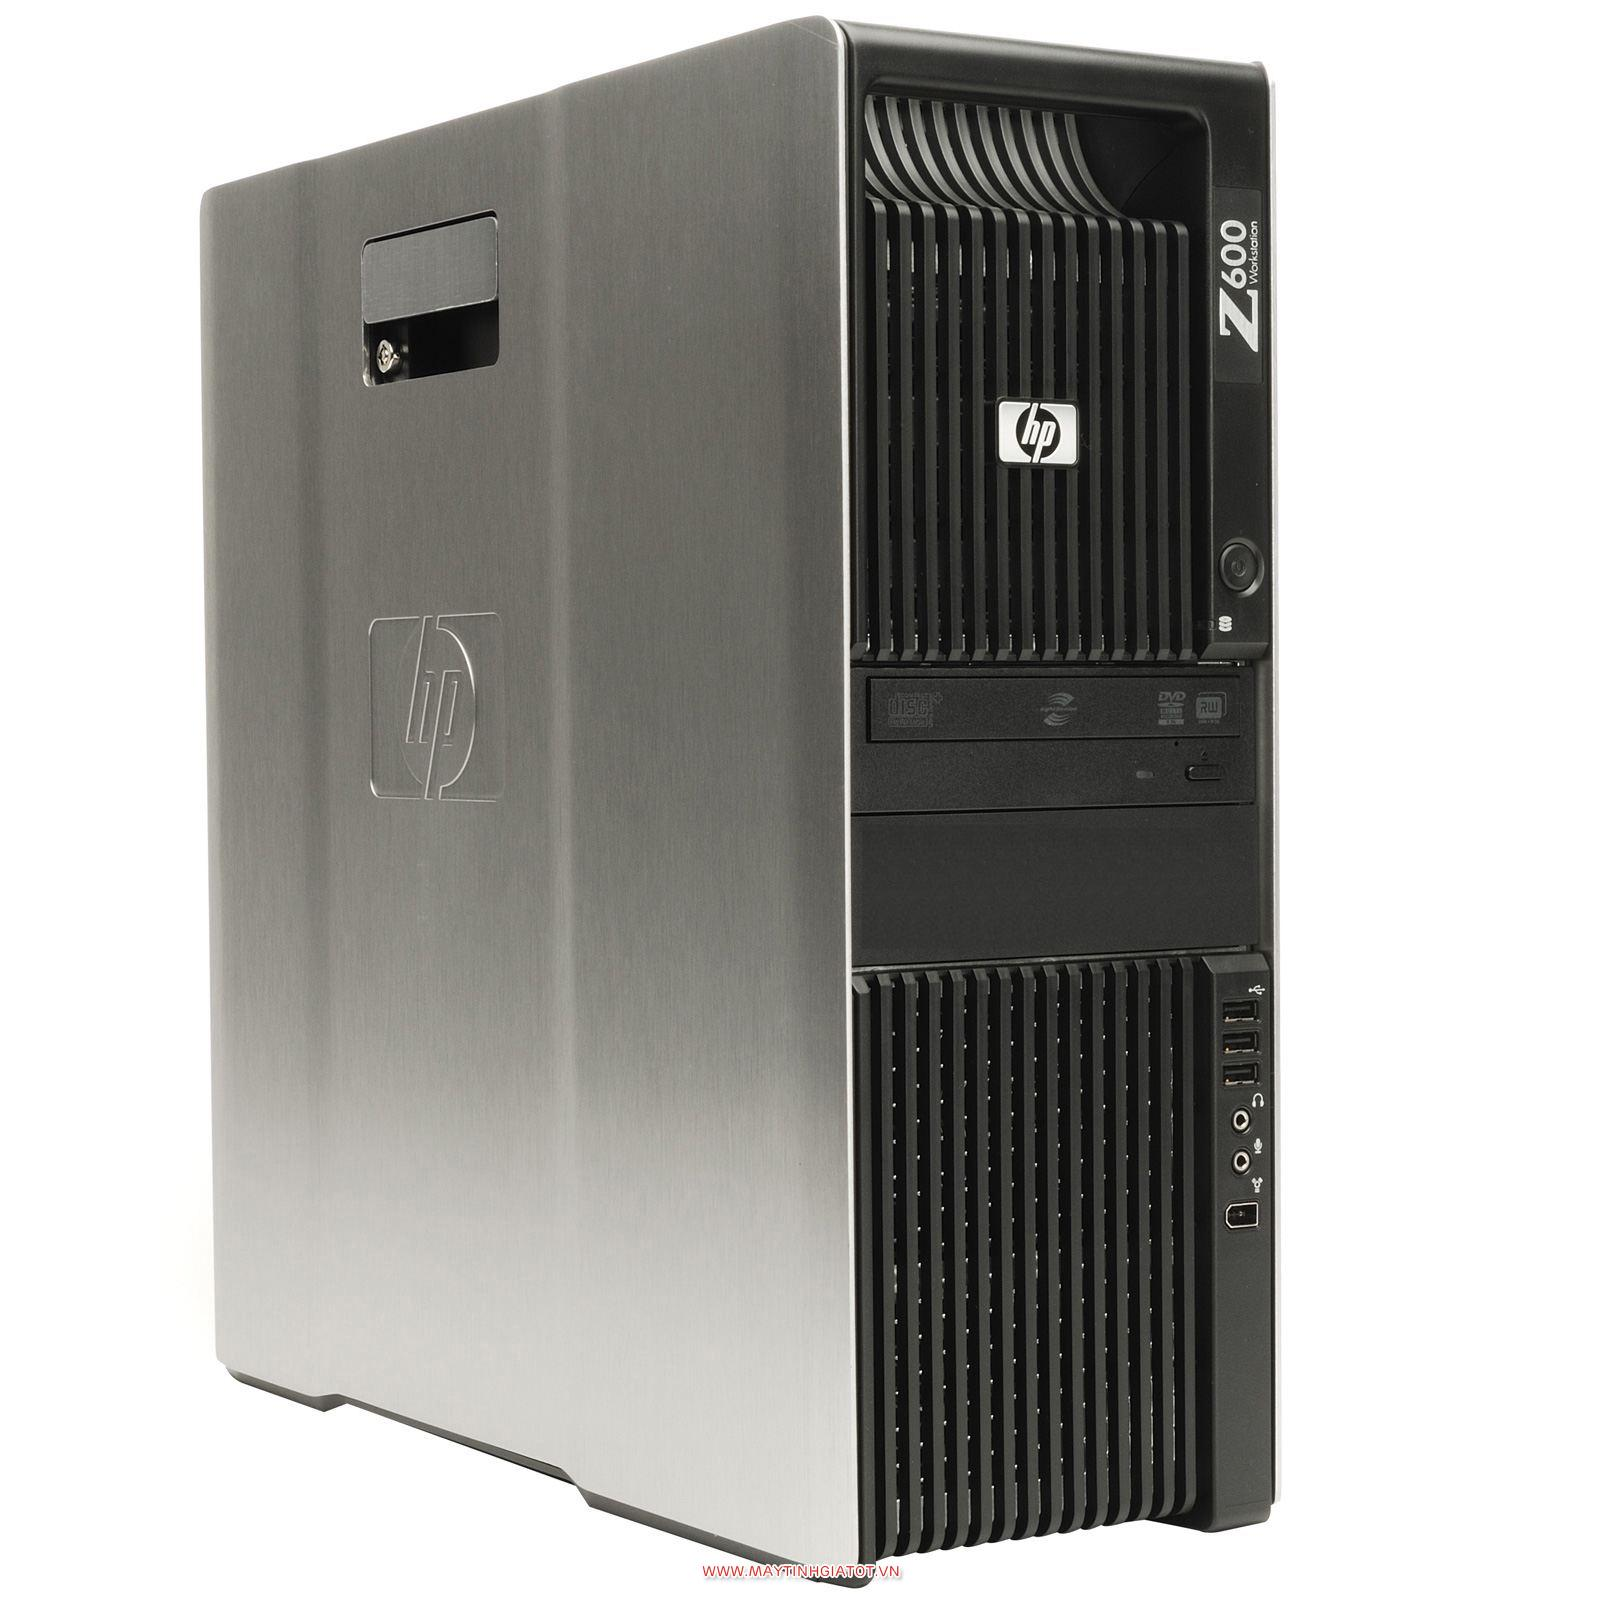 CẤU HÌNH WOKSTATION HP Z600 DUAL XEON X5650 (24 THREADS), RAM 32GB / GTX750TI 2GB